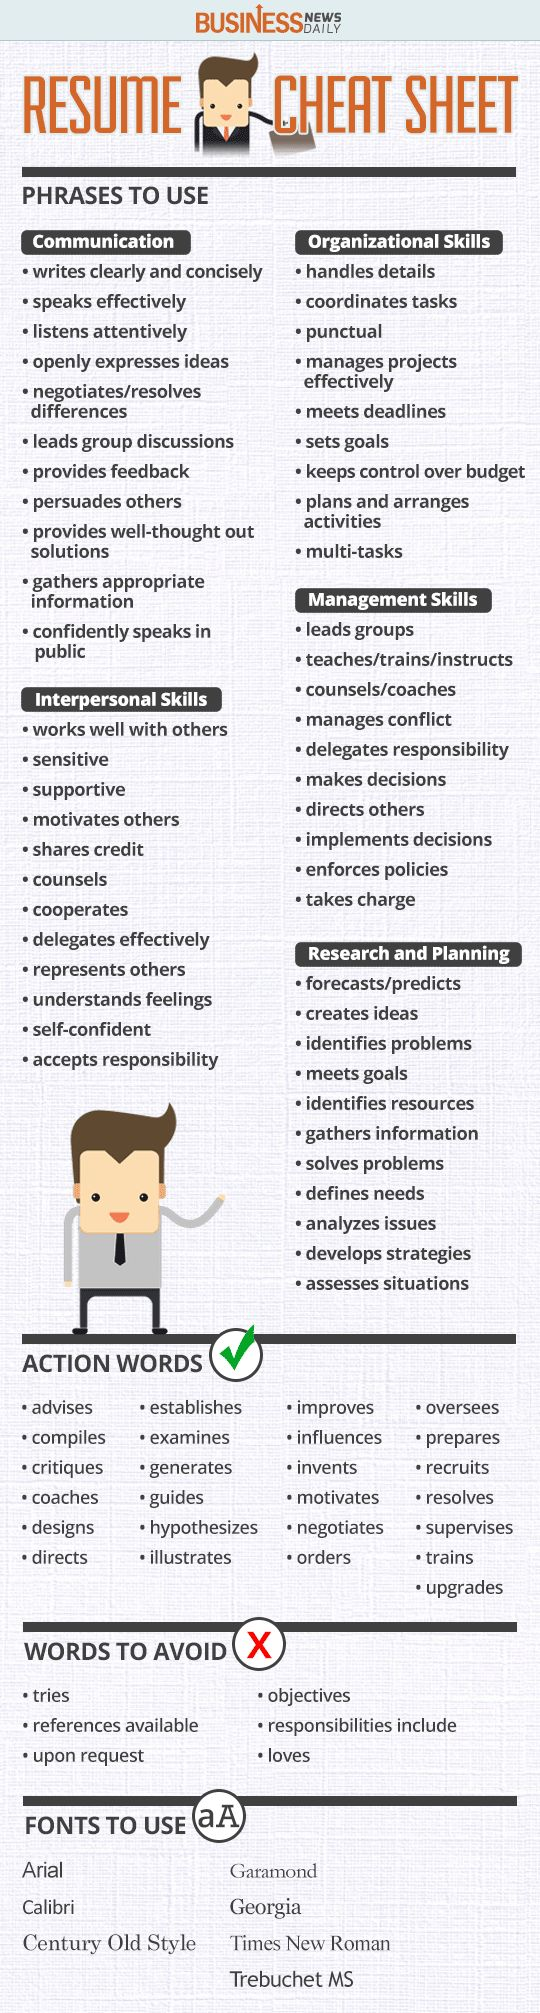 Opposenewapstandardsus  Stunning  Ideas About Resume On Pinterest  Cv Format Resume Cv And  With Handsome Resume Cheat Sheet Infographic Andrews Almost Done With A Complete Unit On Employment Which With Beauteous Resume Action Verbs Also Microsoft Office Resume Templates In Addition What To Include In A Resume And Registered Nurse Resume As Well As Resume Font Size Additionally Nursing Resume Template From Pinterestcom With Opposenewapstandardsus  Handsome  Ideas About Resume On Pinterest  Cv Format Resume Cv And  With Beauteous Resume Cheat Sheet Infographic Andrews Almost Done With A Complete Unit On Employment Which And Stunning Resume Action Verbs Also Microsoft Office Resume Templates In Addition What To Include In A Resume From Pinterestcom